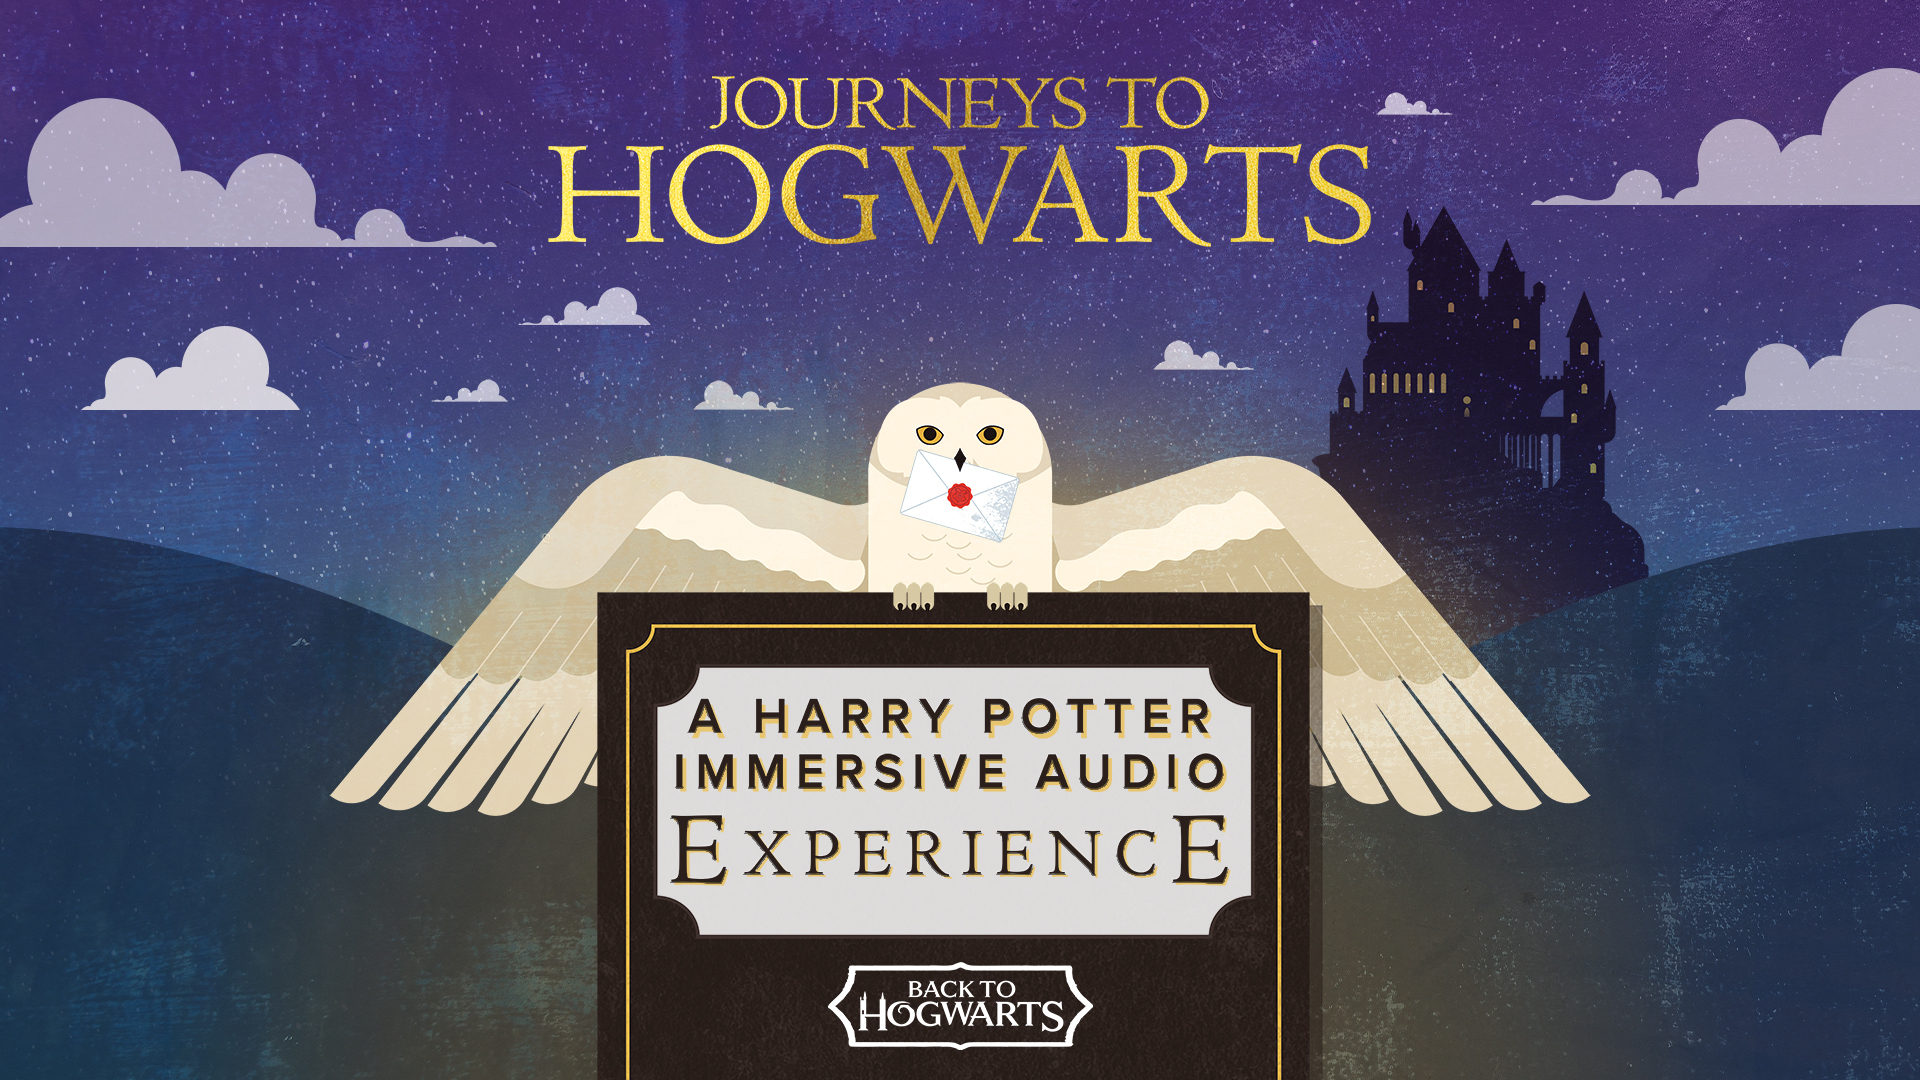 journeys-to-hogwarts-soundscape-pottermore-publishing-thumbnail